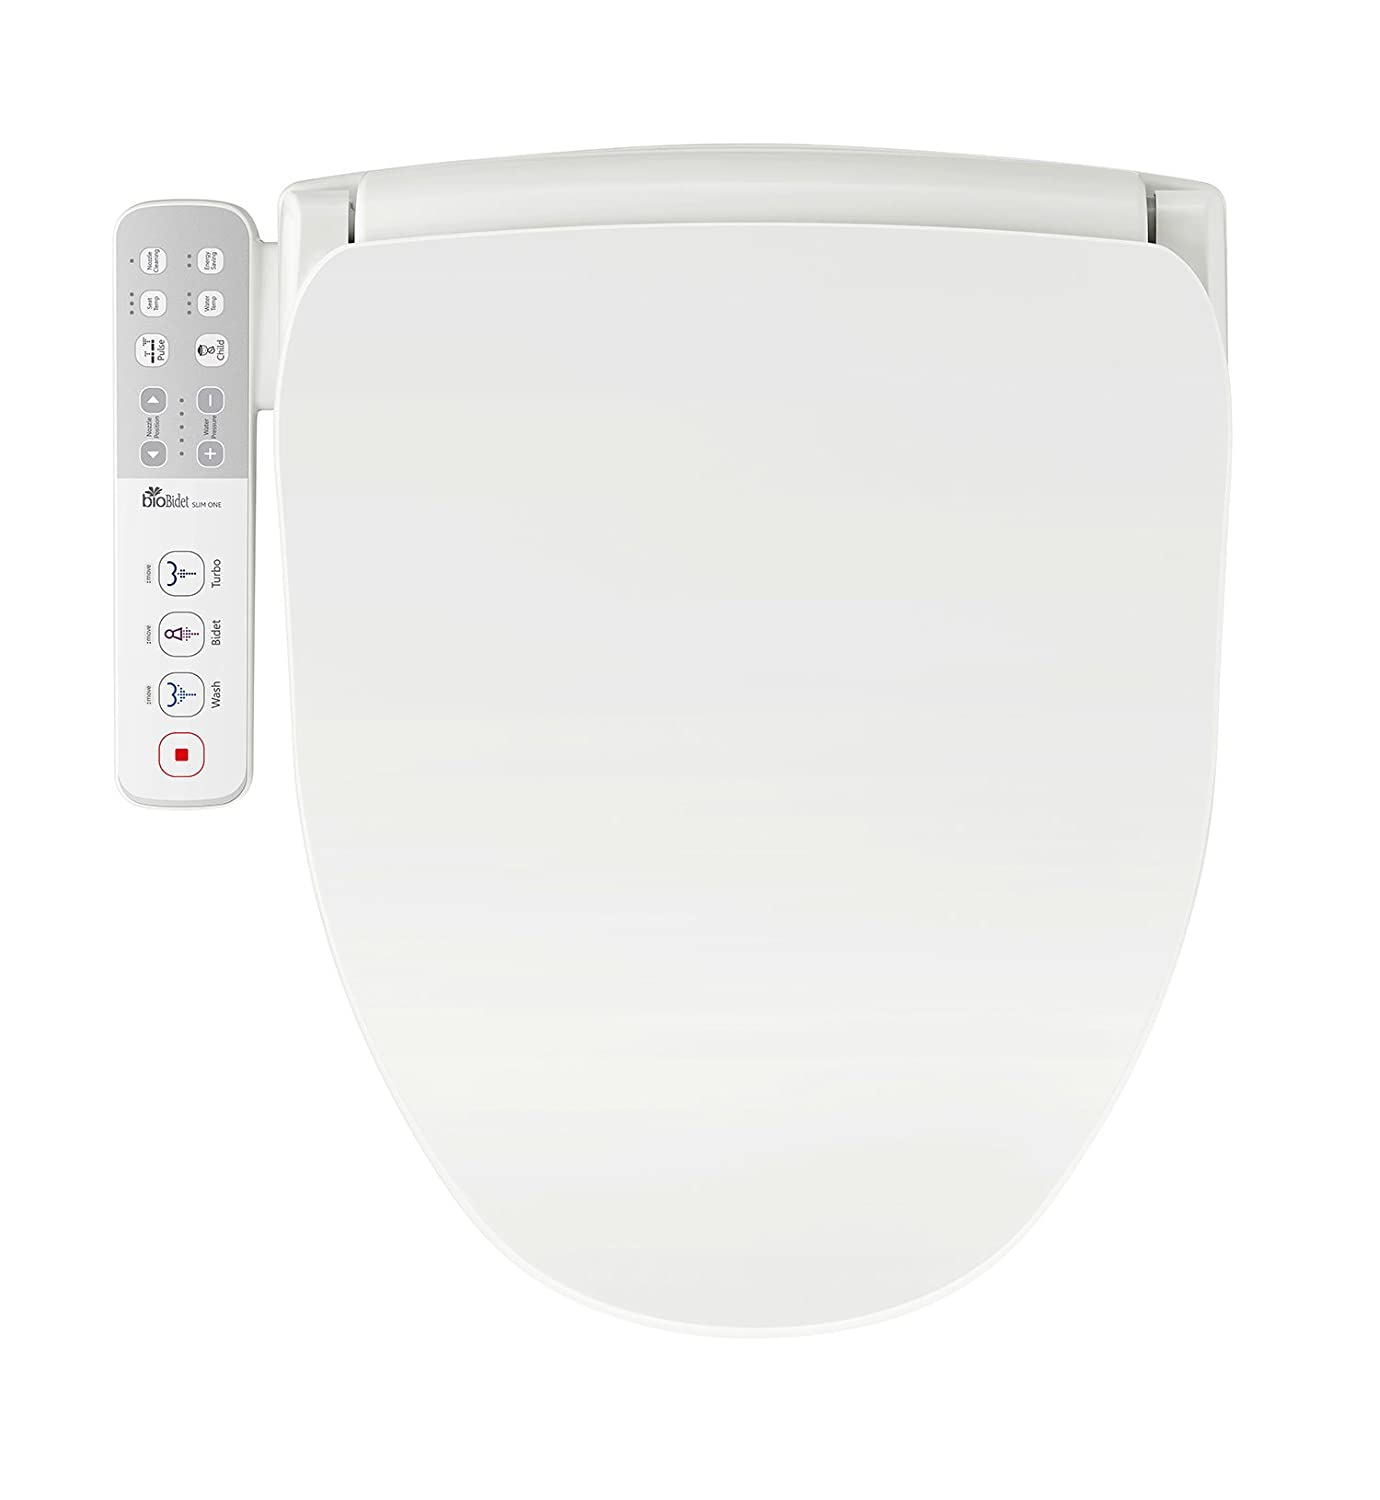 Bio Bidet Slim Smart Toilet Seat in Elongated White with Stainless Steel Self-Cleaning Nozzle, Nightlight, Turbo Wash, Oscillating, and Fusion Warm Water Technology (Slim 1)